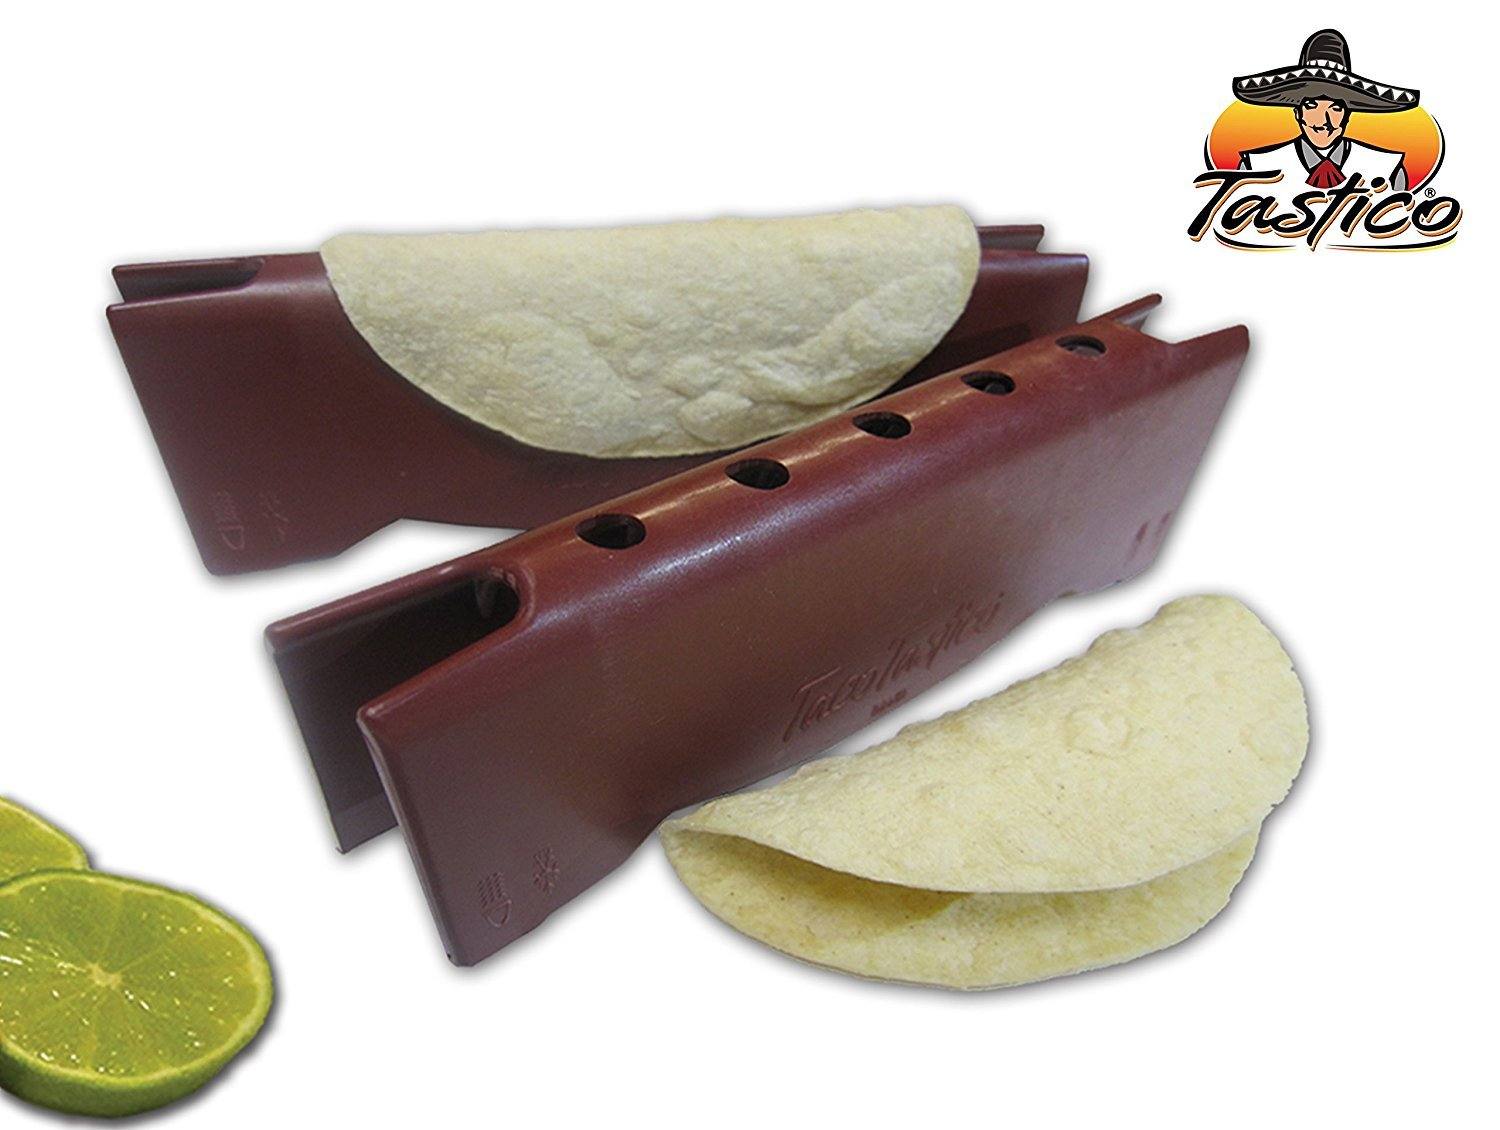 Taco Tastico (3) Pack - Quick and Easy Microwave Taco Shell Maker